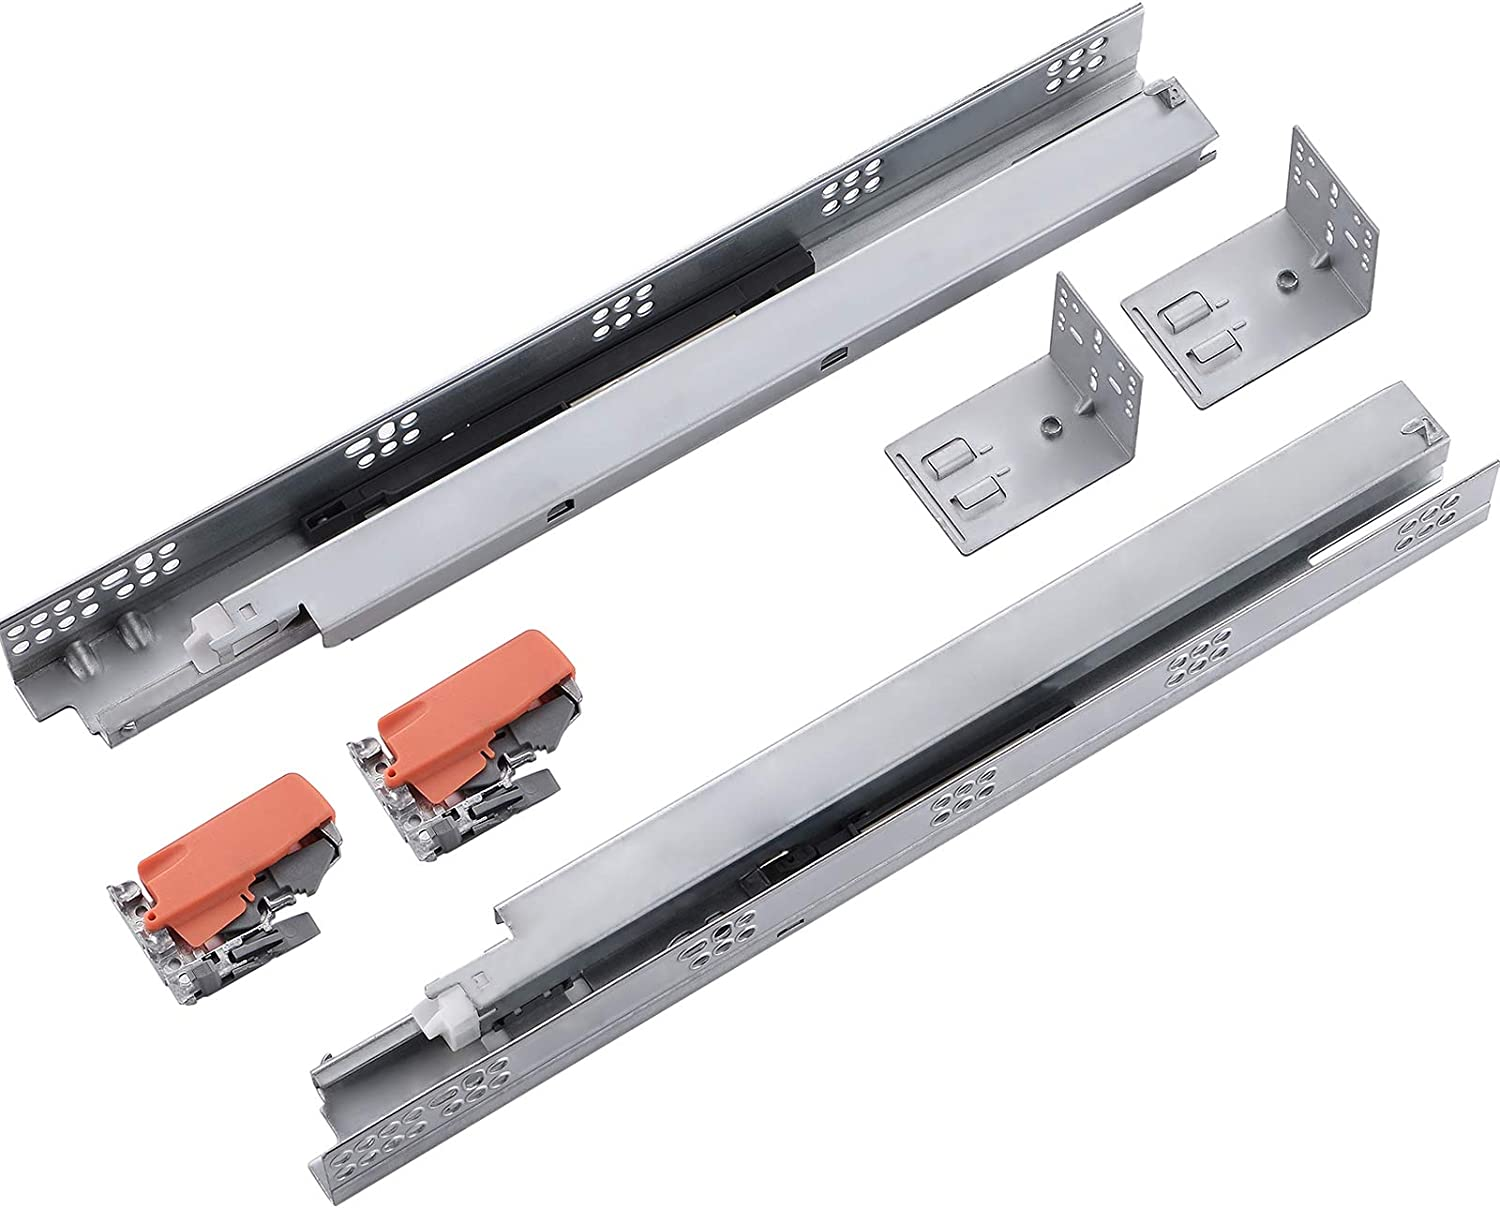 VALISY 2 Pair of 15 Inch Ball Bearing Full Extension Soft Close Undermount Drawer Slides, Bottom Mount Slow Self Closing Cabinet Metal Drawer Rails with Runner, Locking Device, Back Bracket and Screws